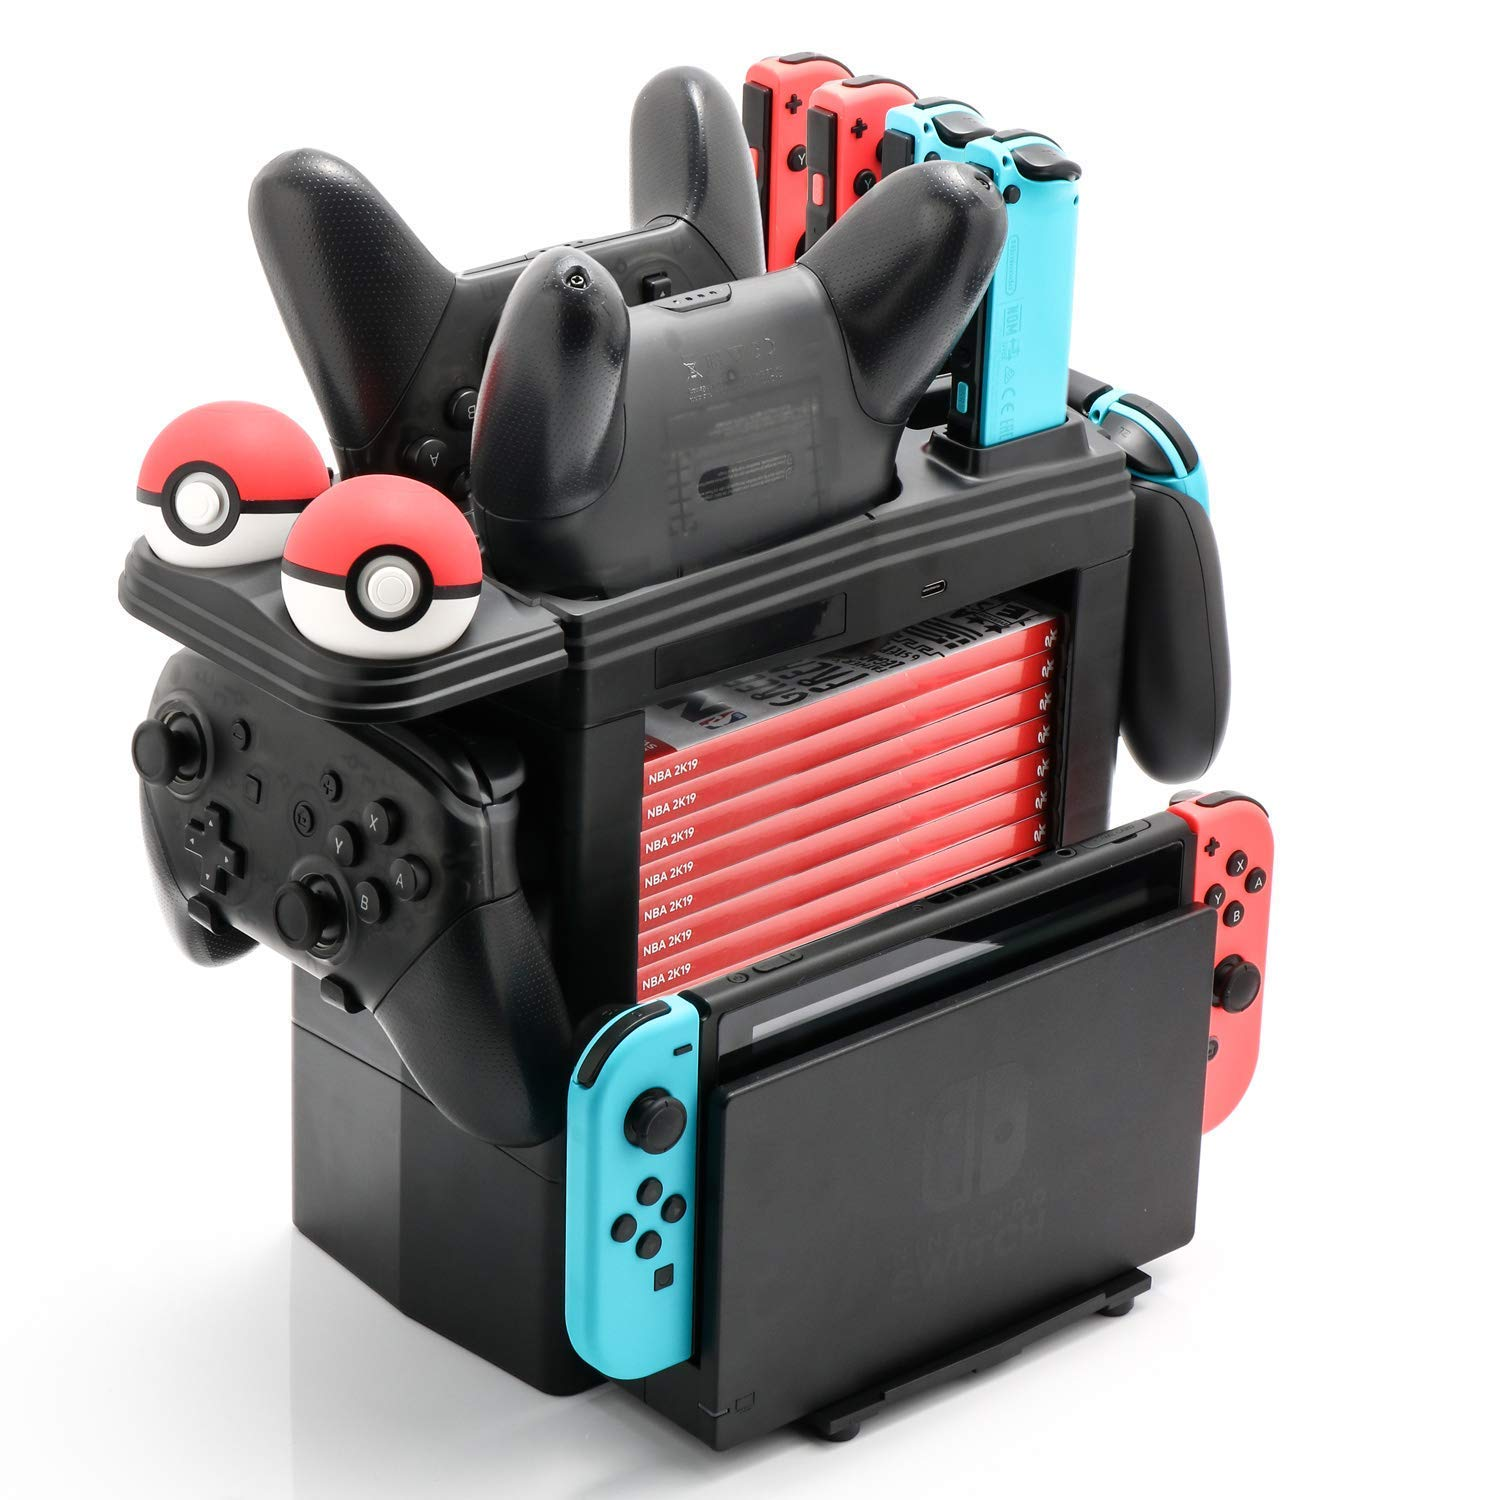 Skywin Charging Tower for Nintendo Switch Compatible with Nintendo Switch Accessories - Charge Display and Organize Joy-Cons Pro Controllers Charging Grip Poke Balls Game Boxes Game Cards Switch Dock by Skywin